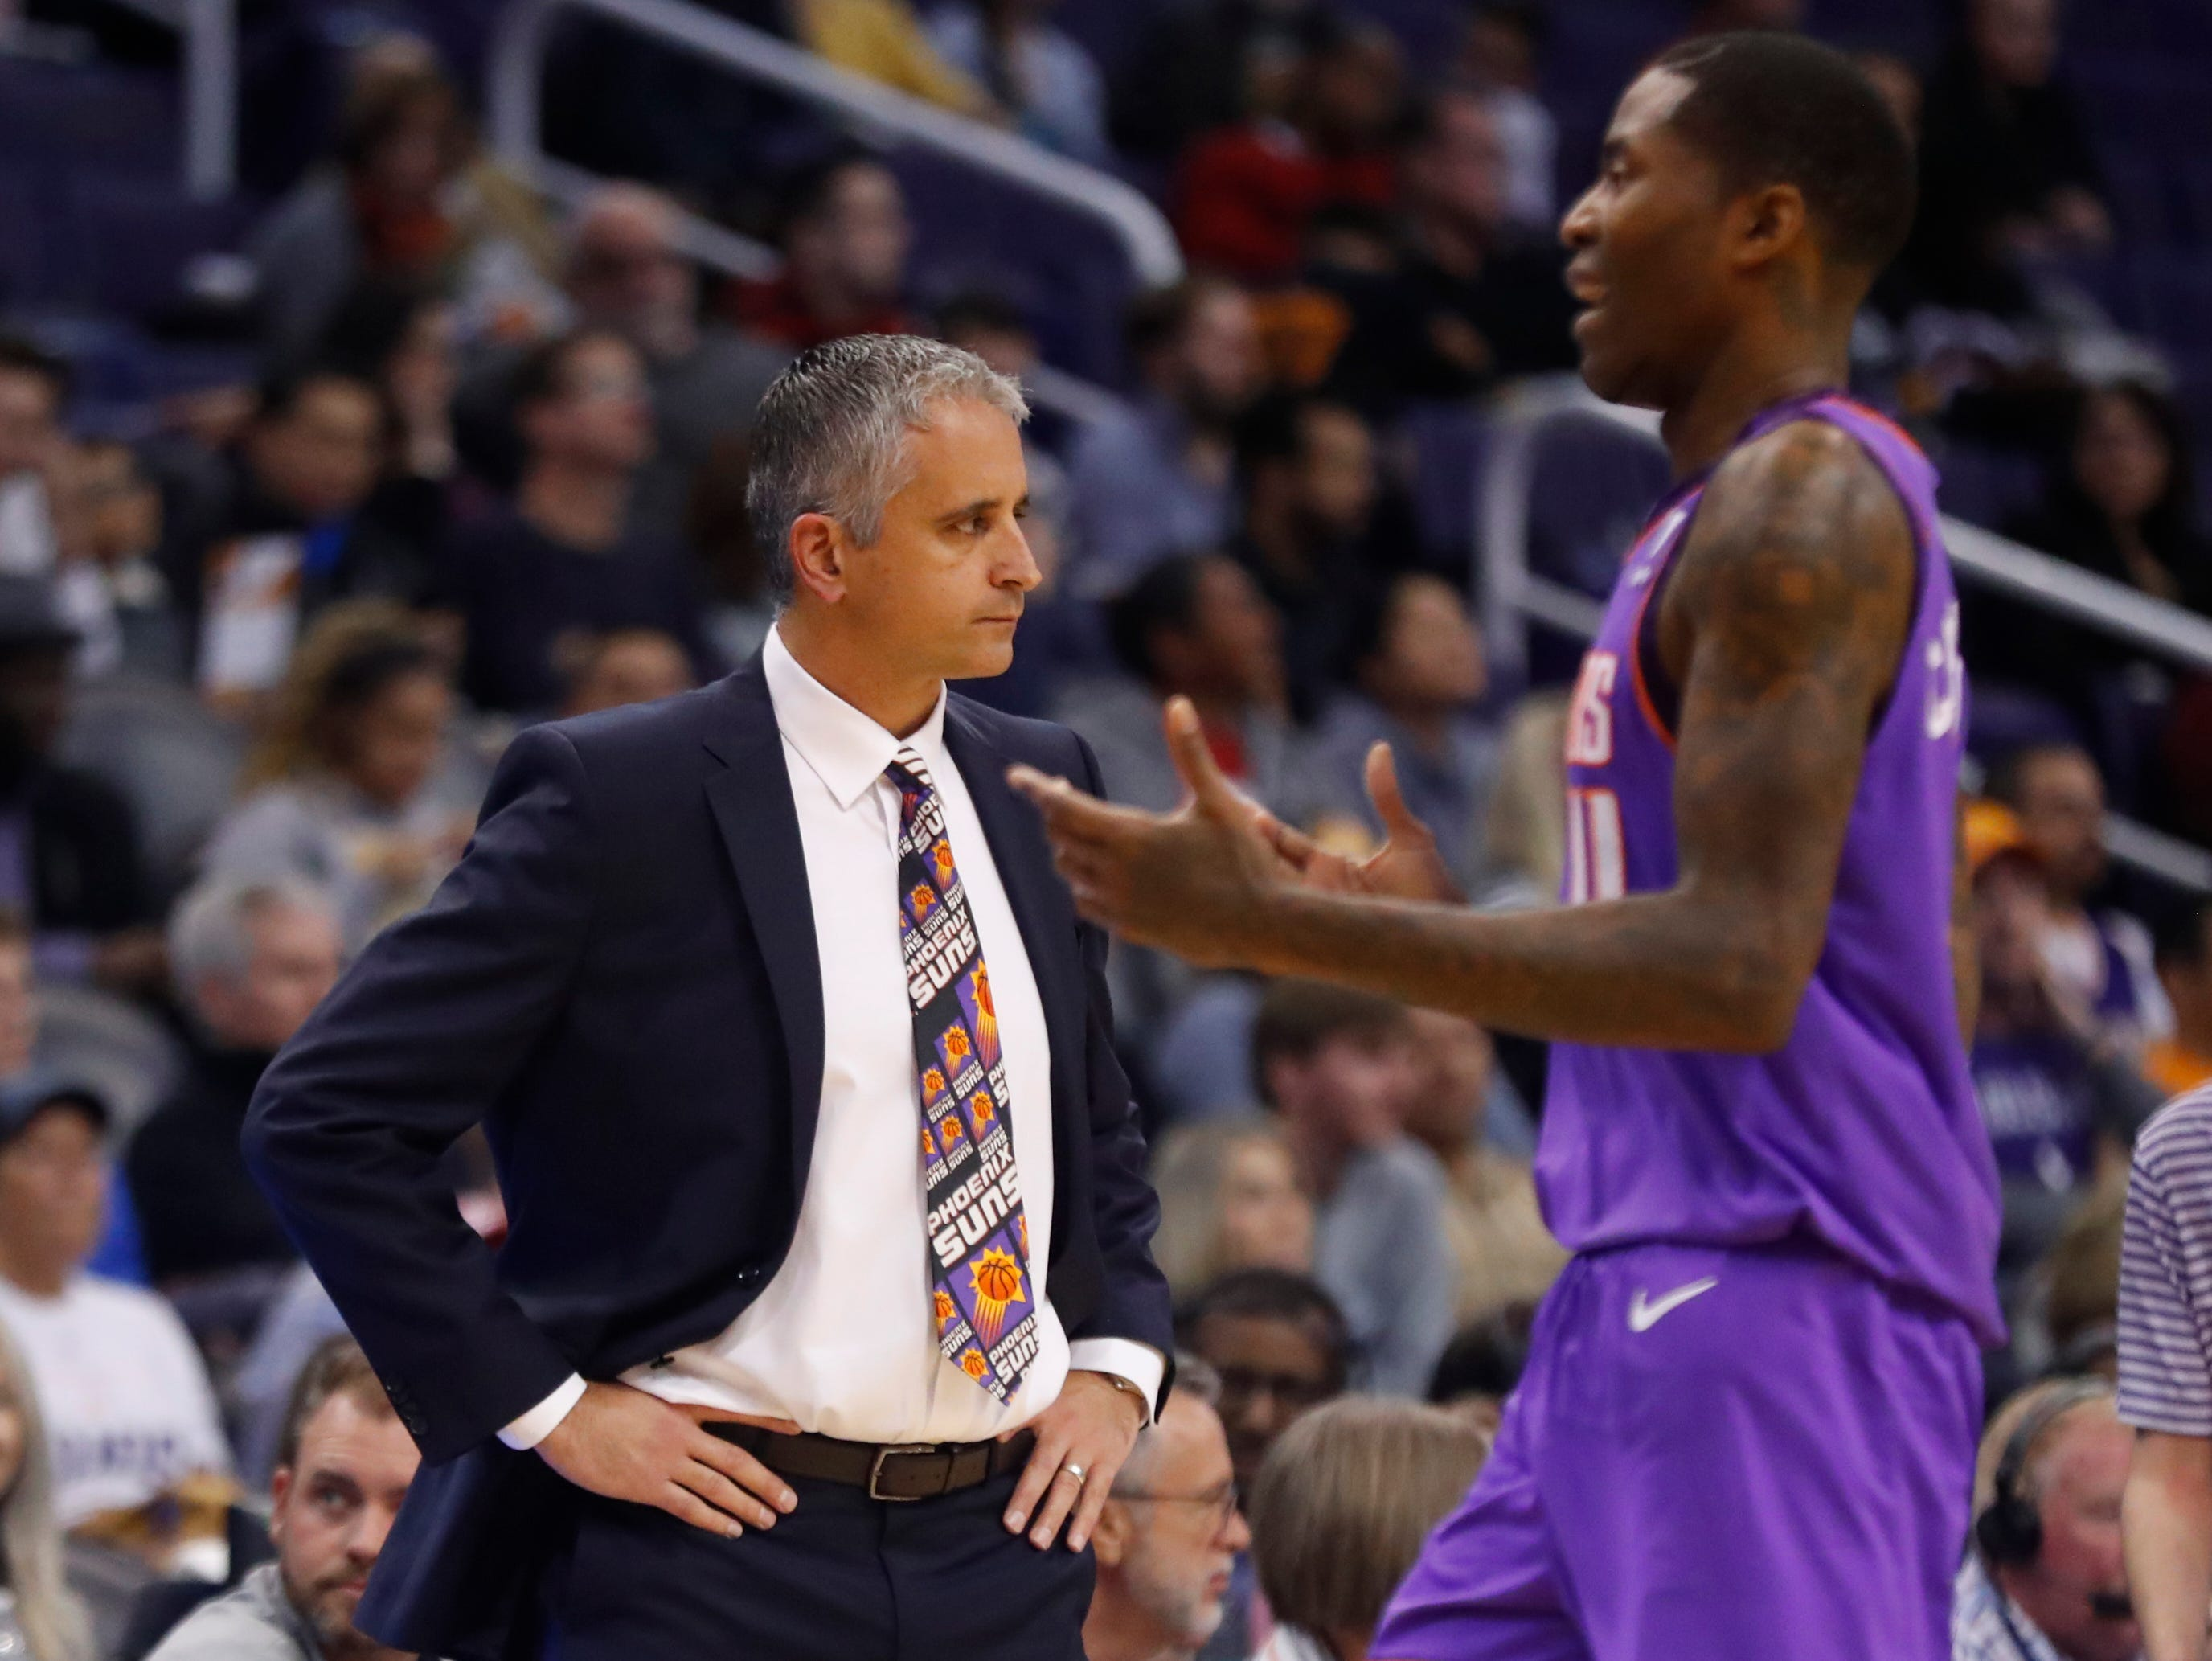 Suns head coach Igor Kokoskov reacts as Jamal Crawford leaves the court against the Magic during the first half at Talking Stick Resort Arena in Phoenix, Ariz. on November 30, 2018.